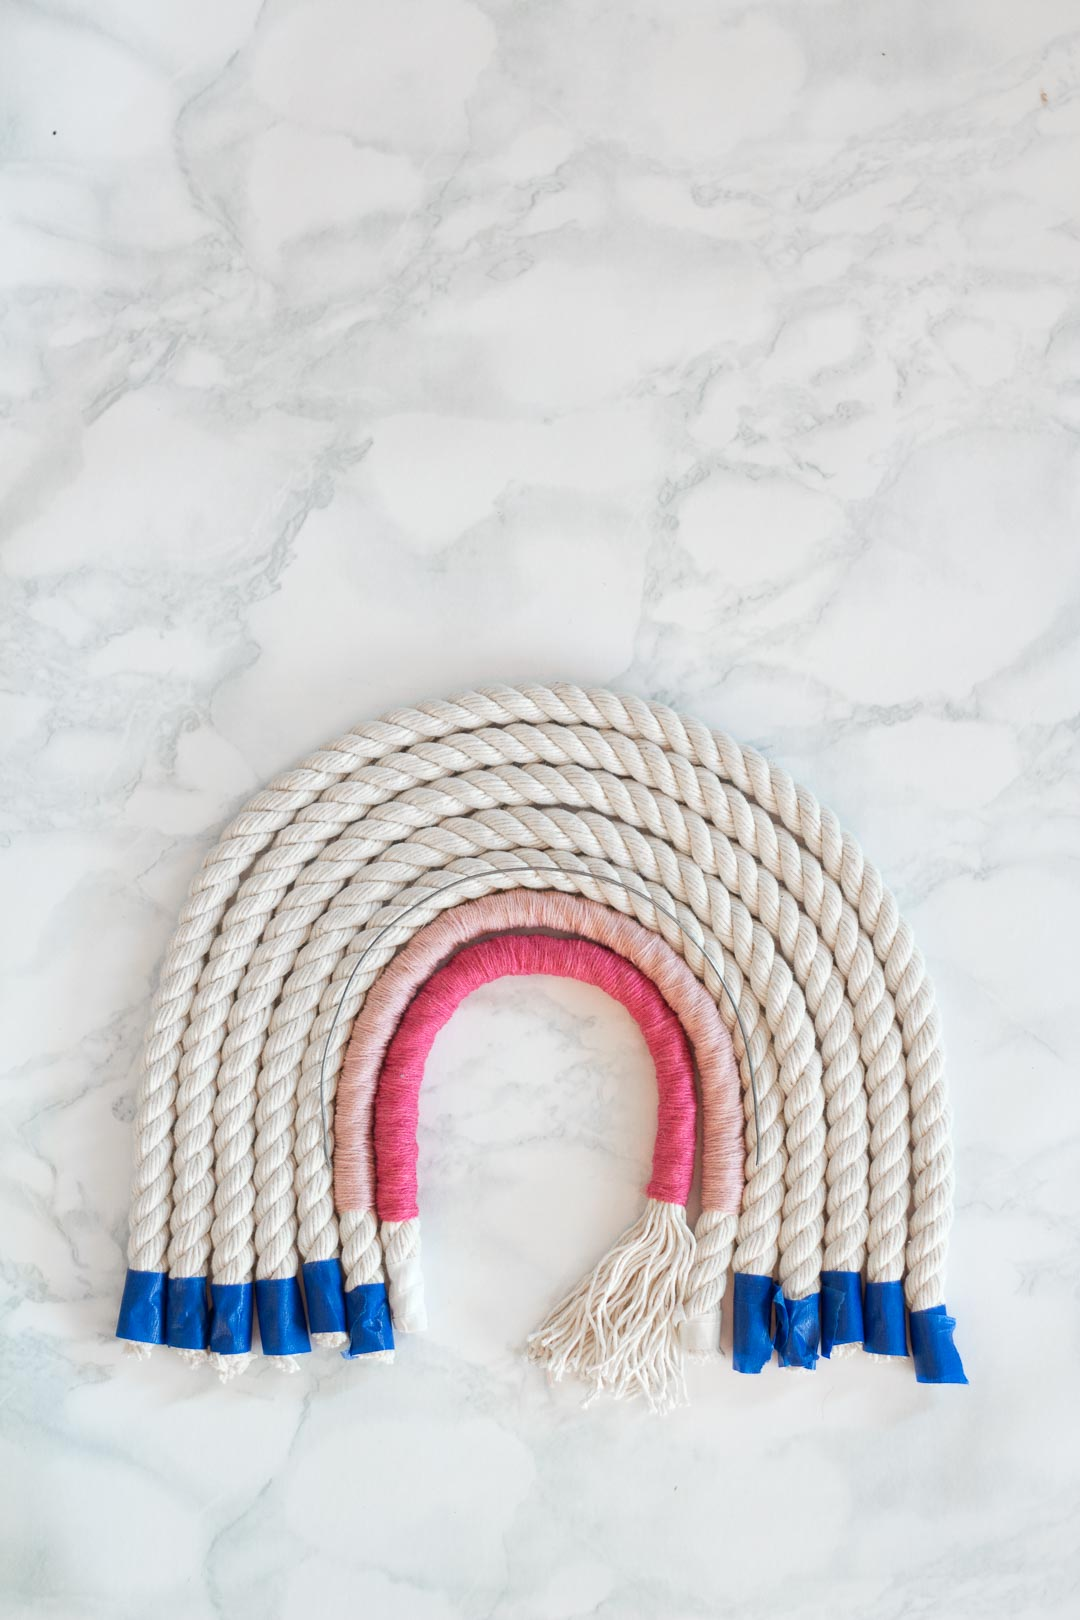 Rope Rainbow Wall Hanging DIY